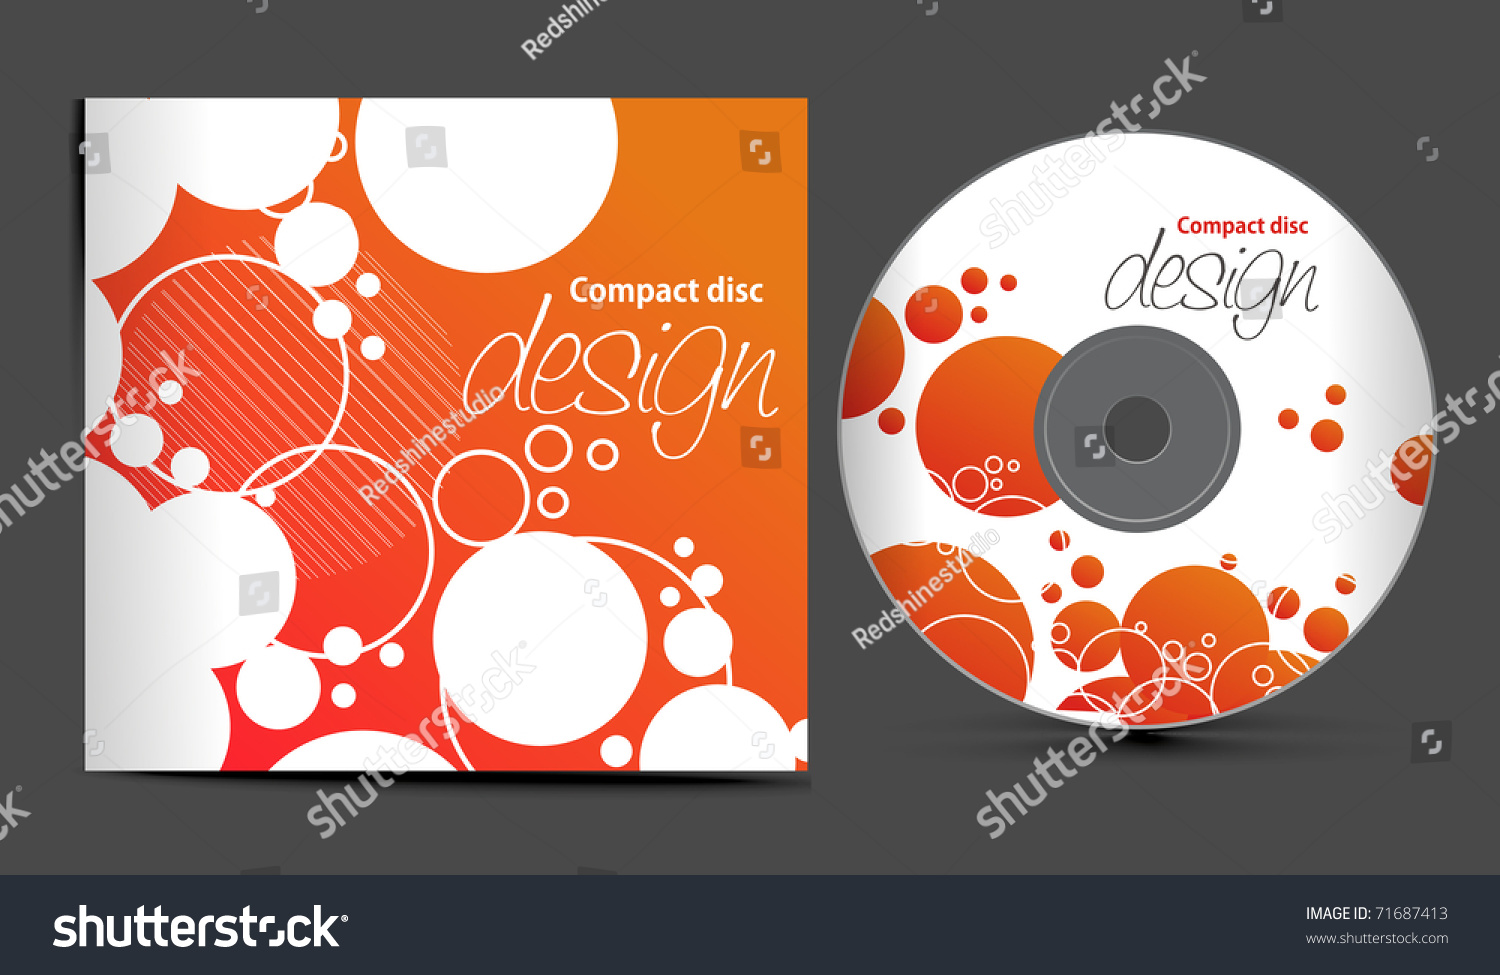 vector cd cover design template with copy space vector illustration 71687413 shutterstock. Black Bedroom Furniture Sets. Home Design Ideas